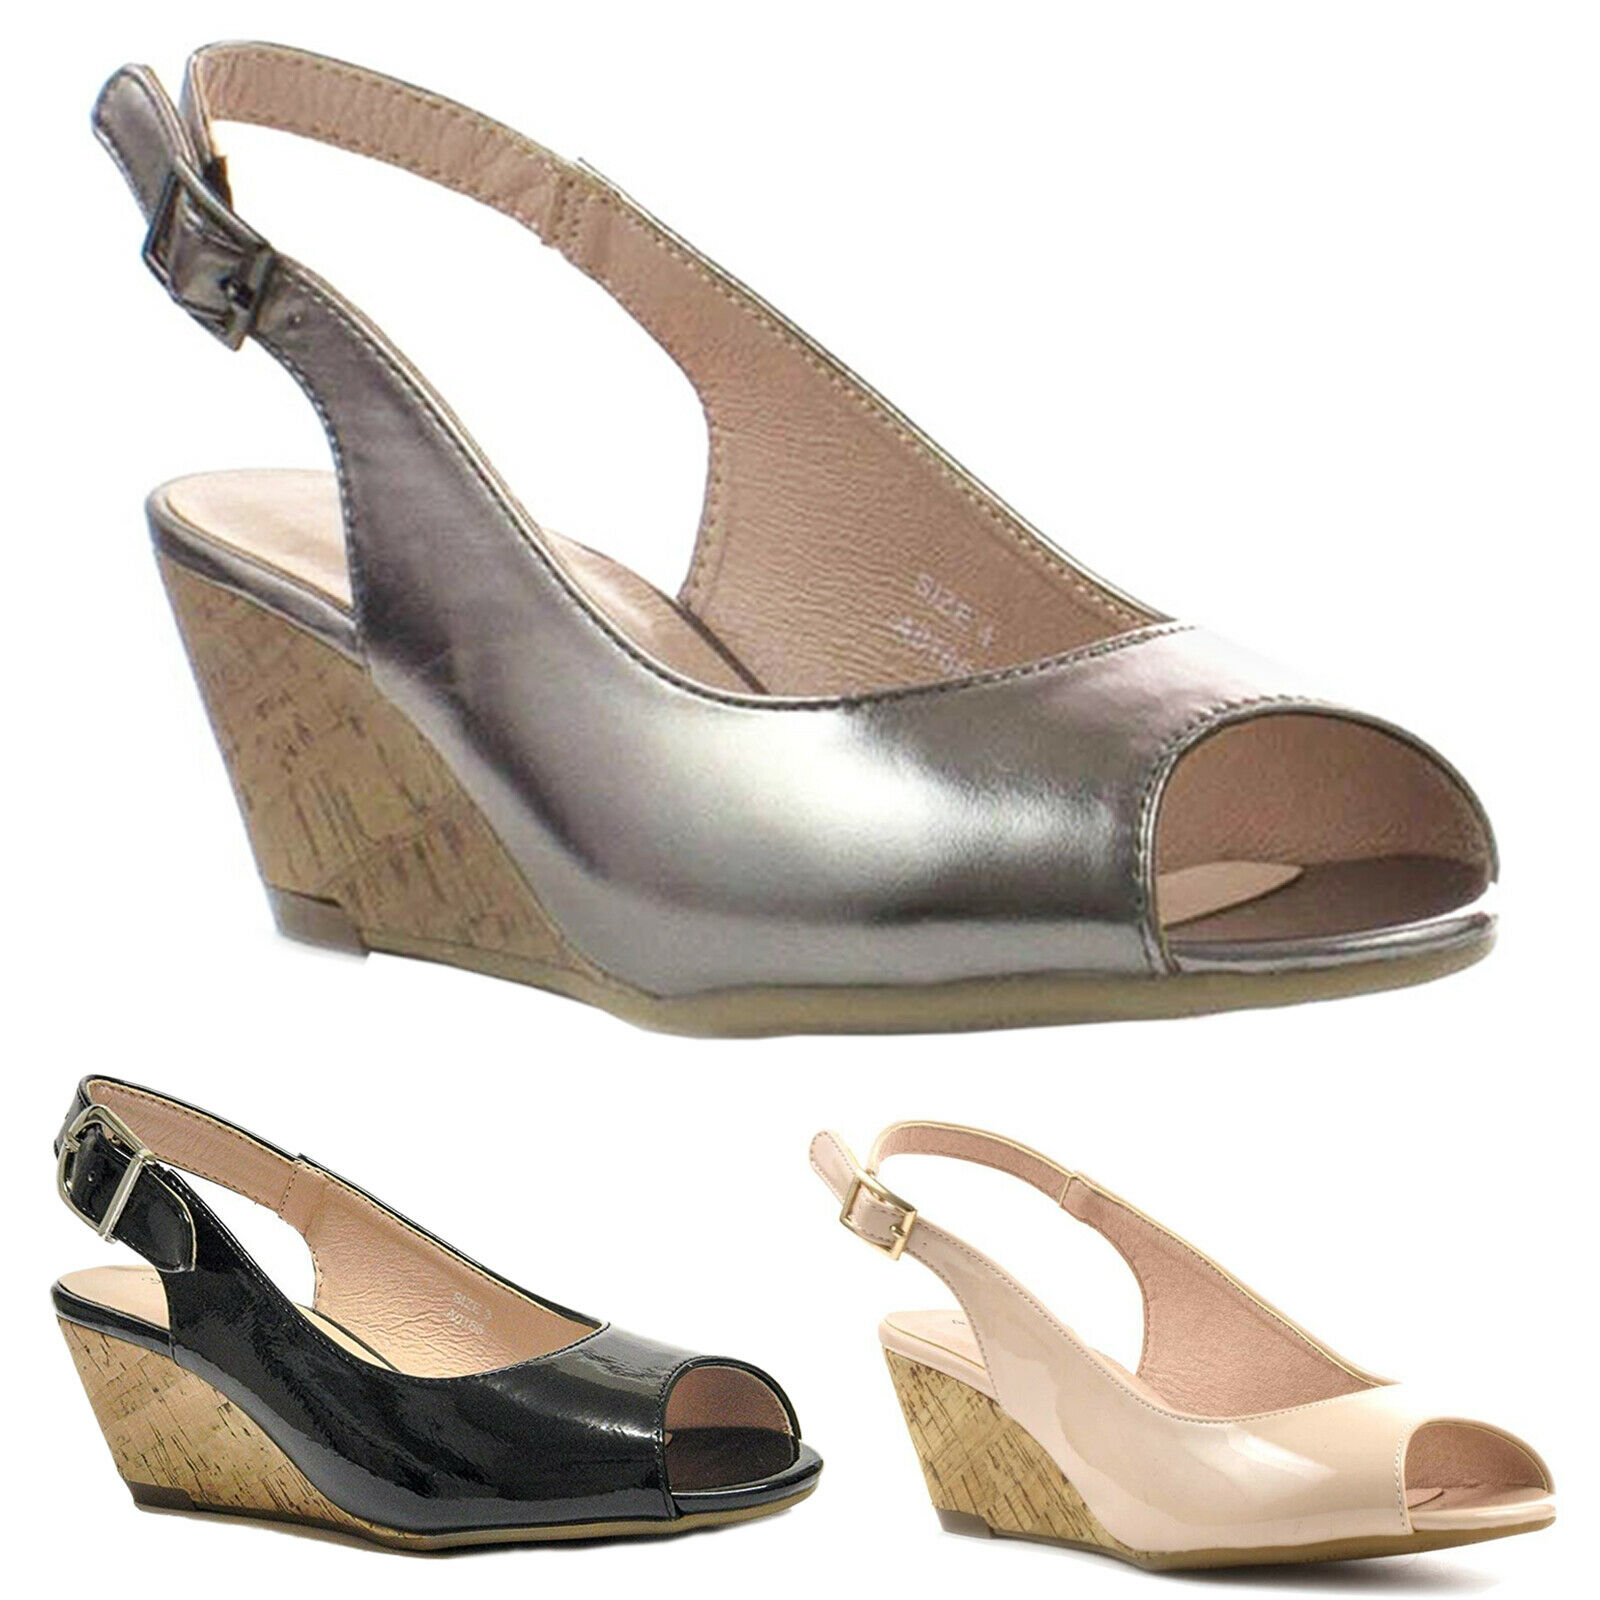 f58bcd7f3c5 Details about COMFORT PLUS LADIES WIDE FIT WEDGE SANDALS WOMENS PEEP TOE  SLINGBACK CASUAL SHOE